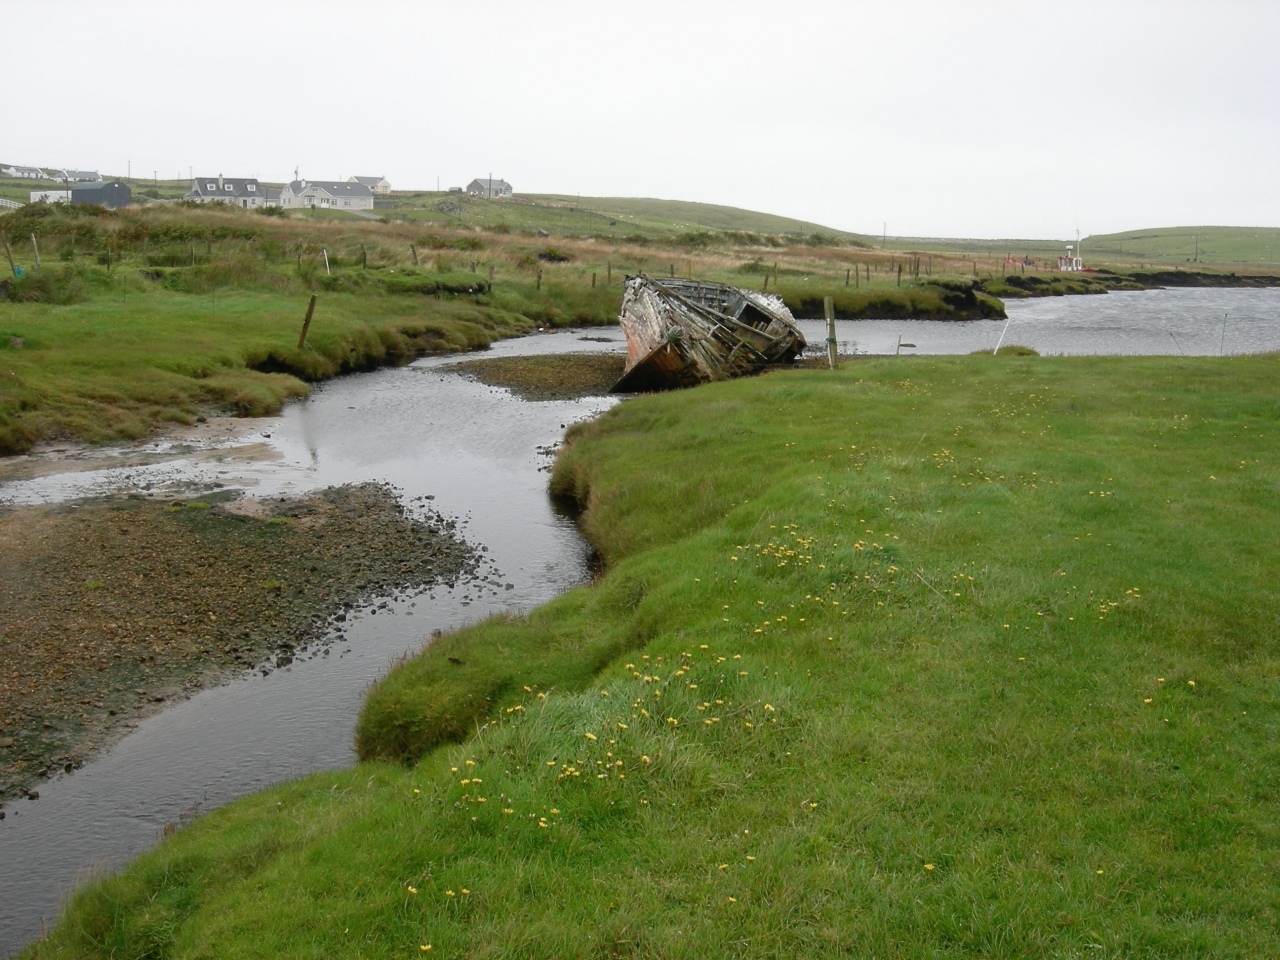 Where the creek feeds Blind Harbor in Tipp